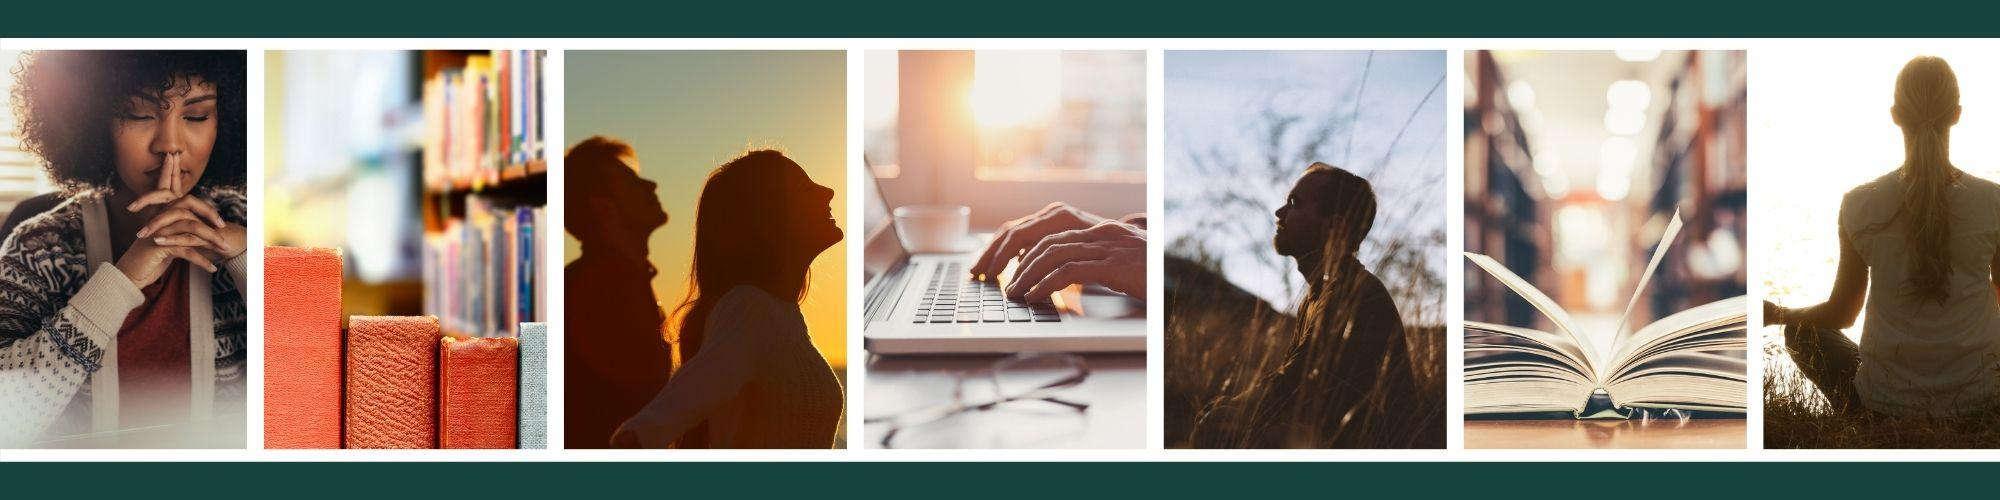 Image shows a person in a moment of thought, line of books, two people outdoors feel the sun on their faces, person typing on a laptop, a person sitting in a field, open book, and a person meditating.